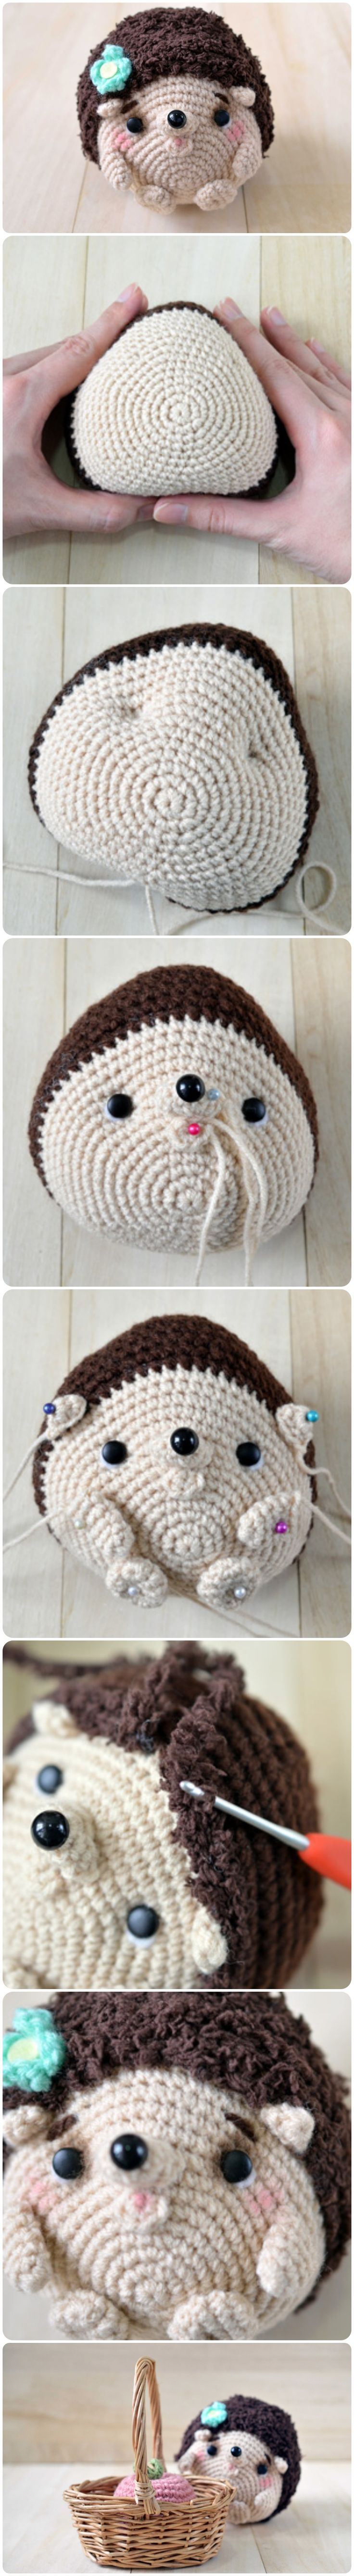 #Crochet #Hedgehogs with Free #Pattern